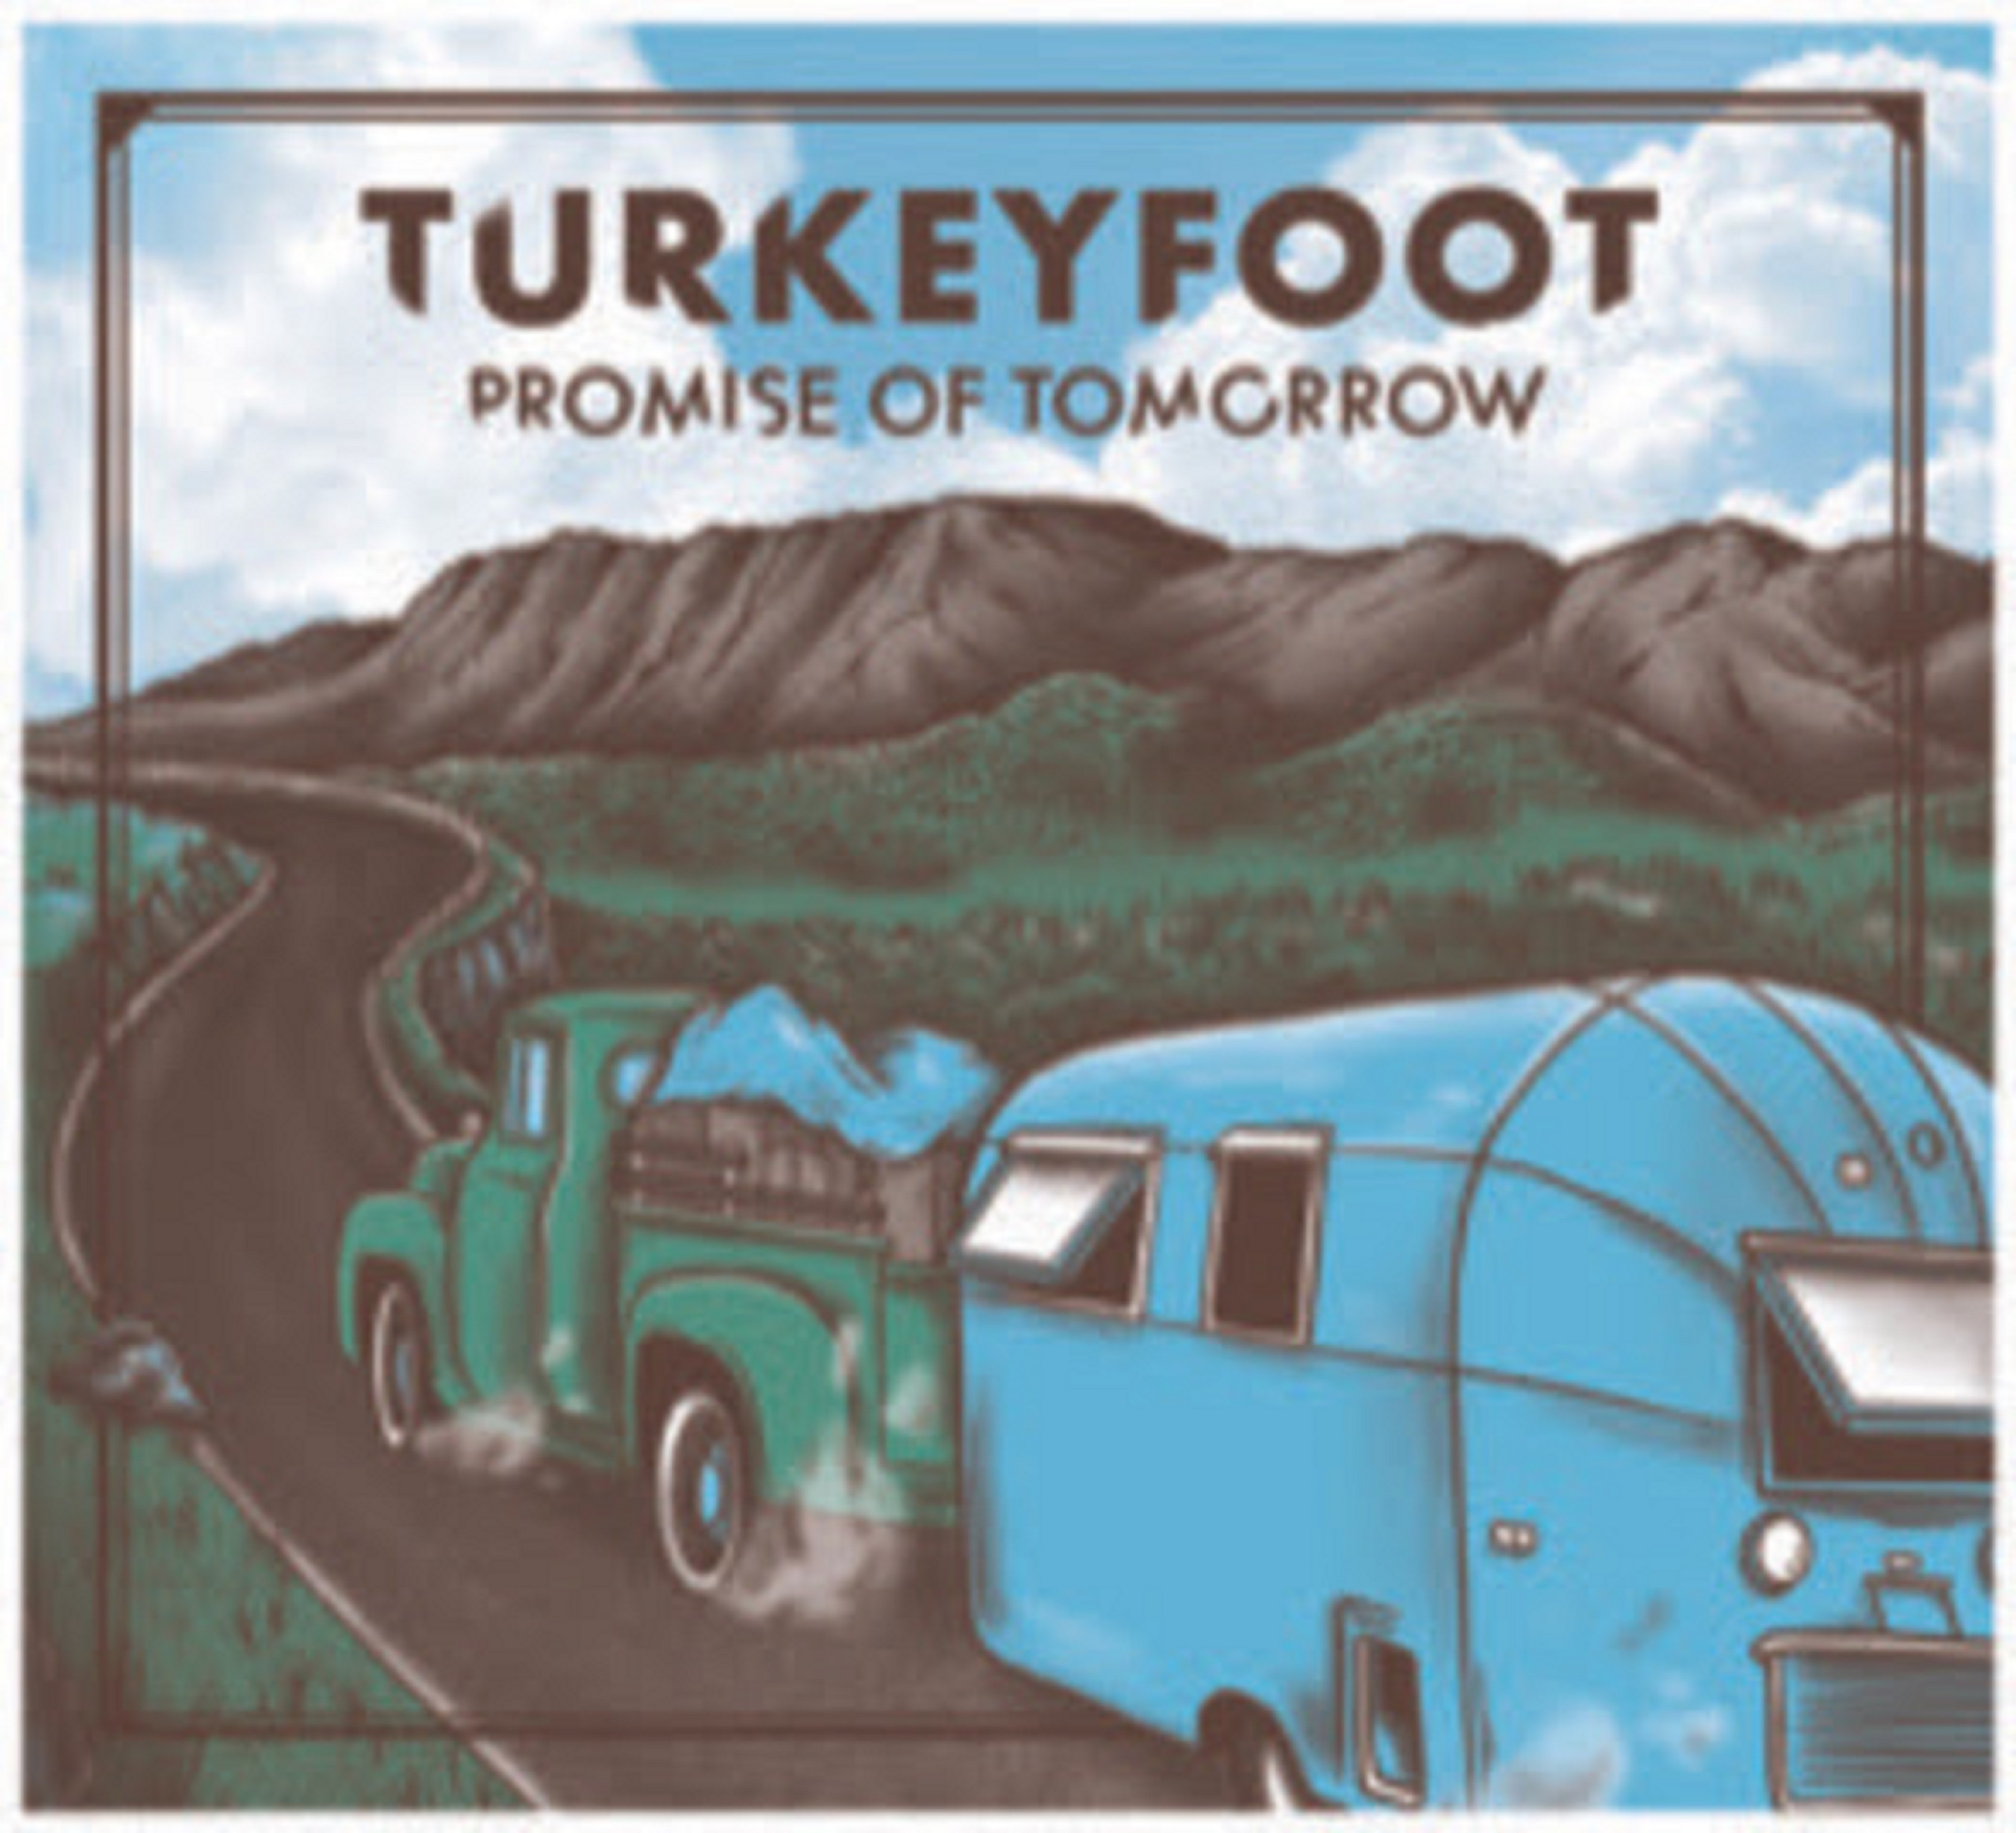 Turkeyfoot Releases Debut Album 'Promise of Tomorrow' on June 5